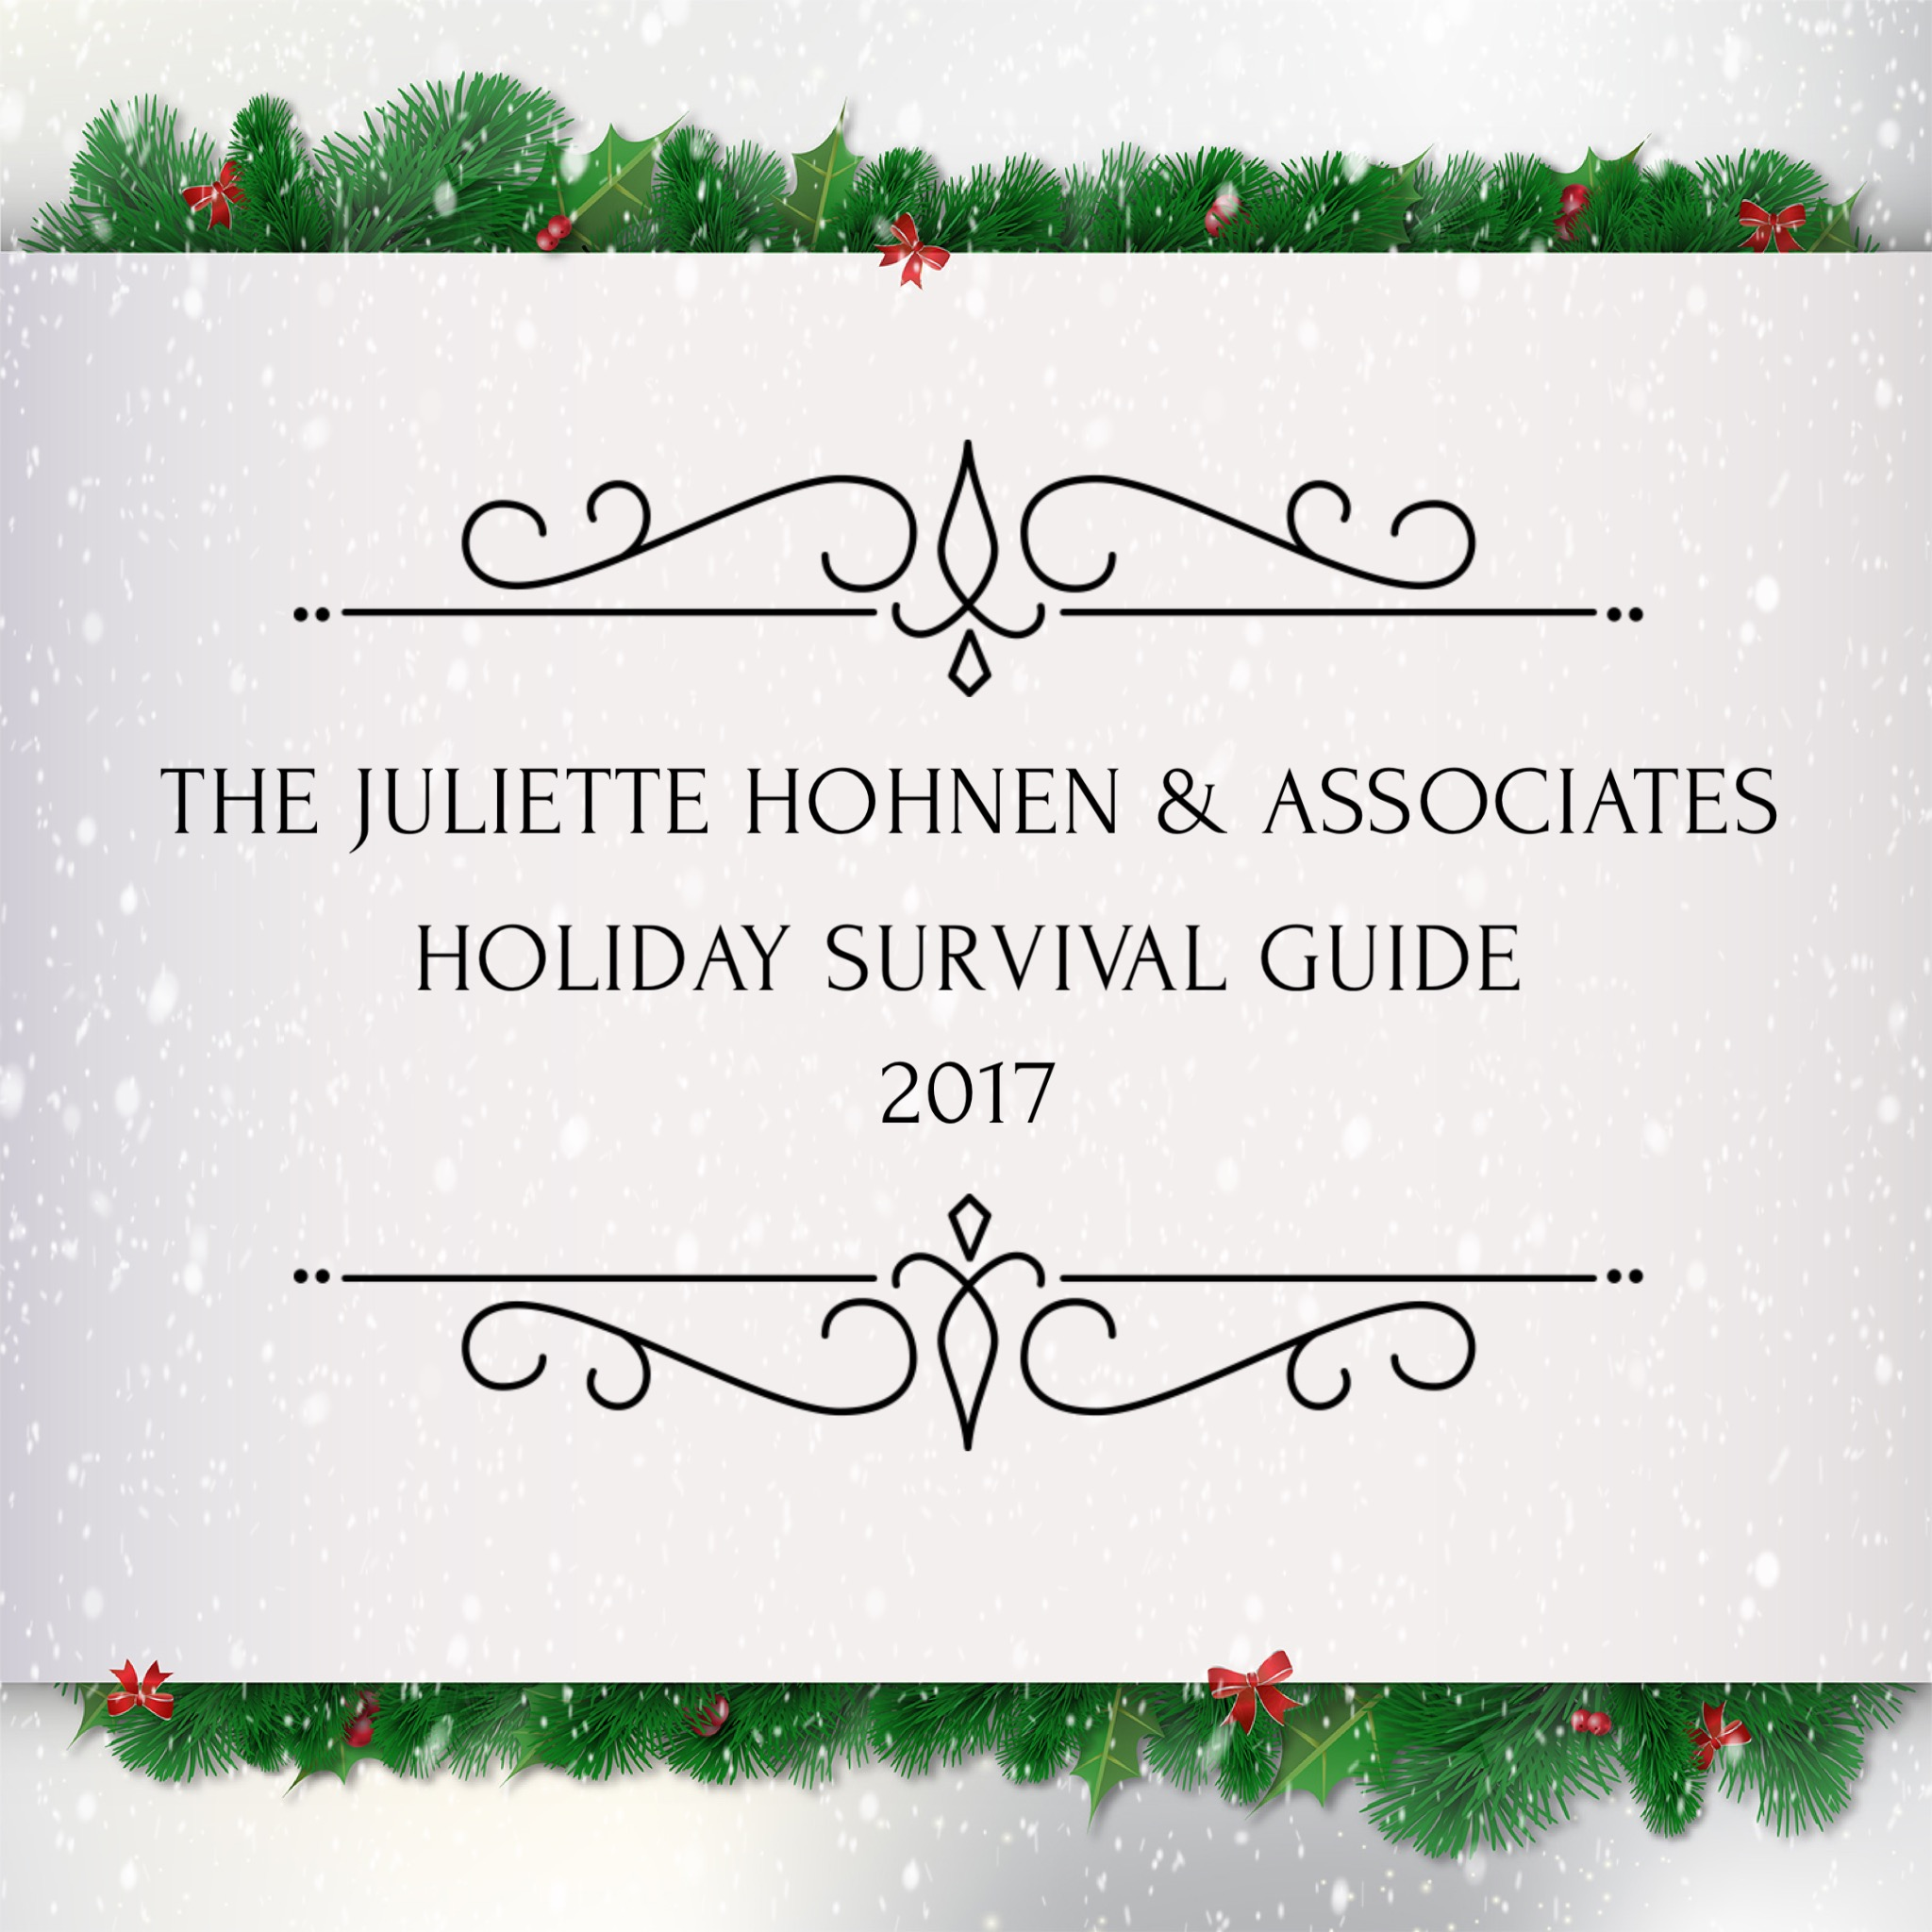 The 2017 Holiday Survival Guide